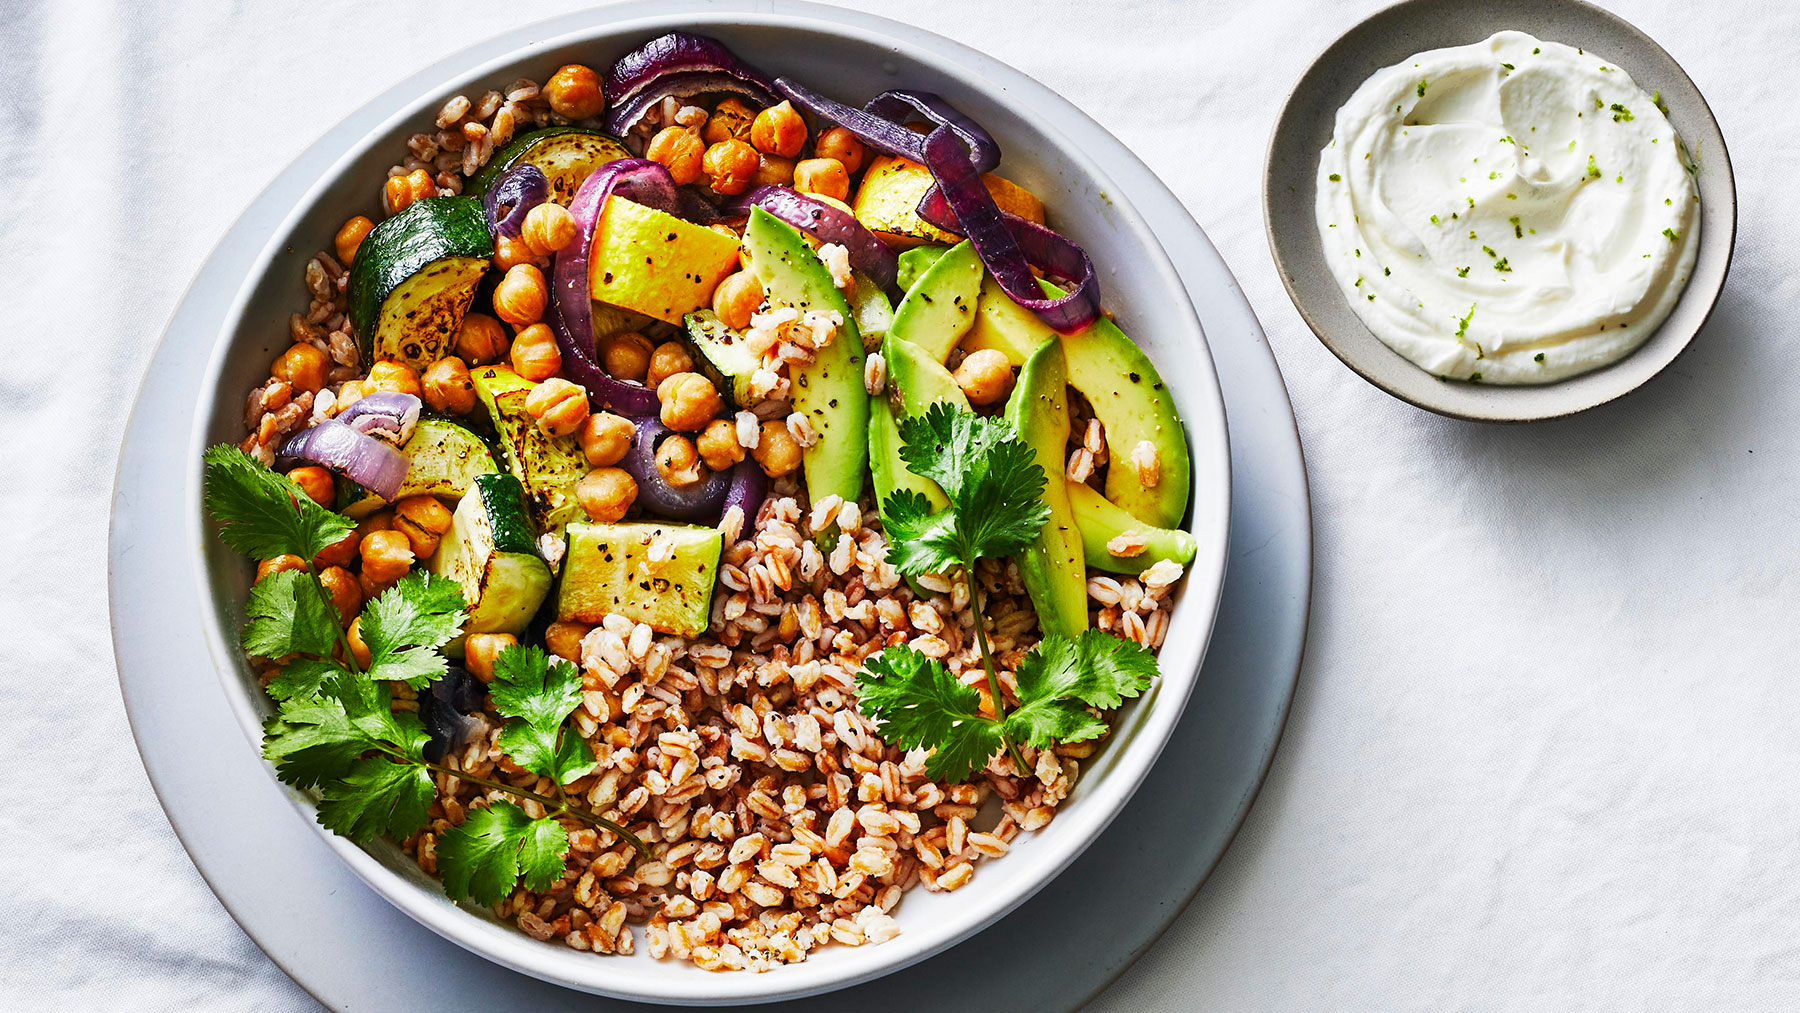 Summer Squash Farro Bowl Recipe